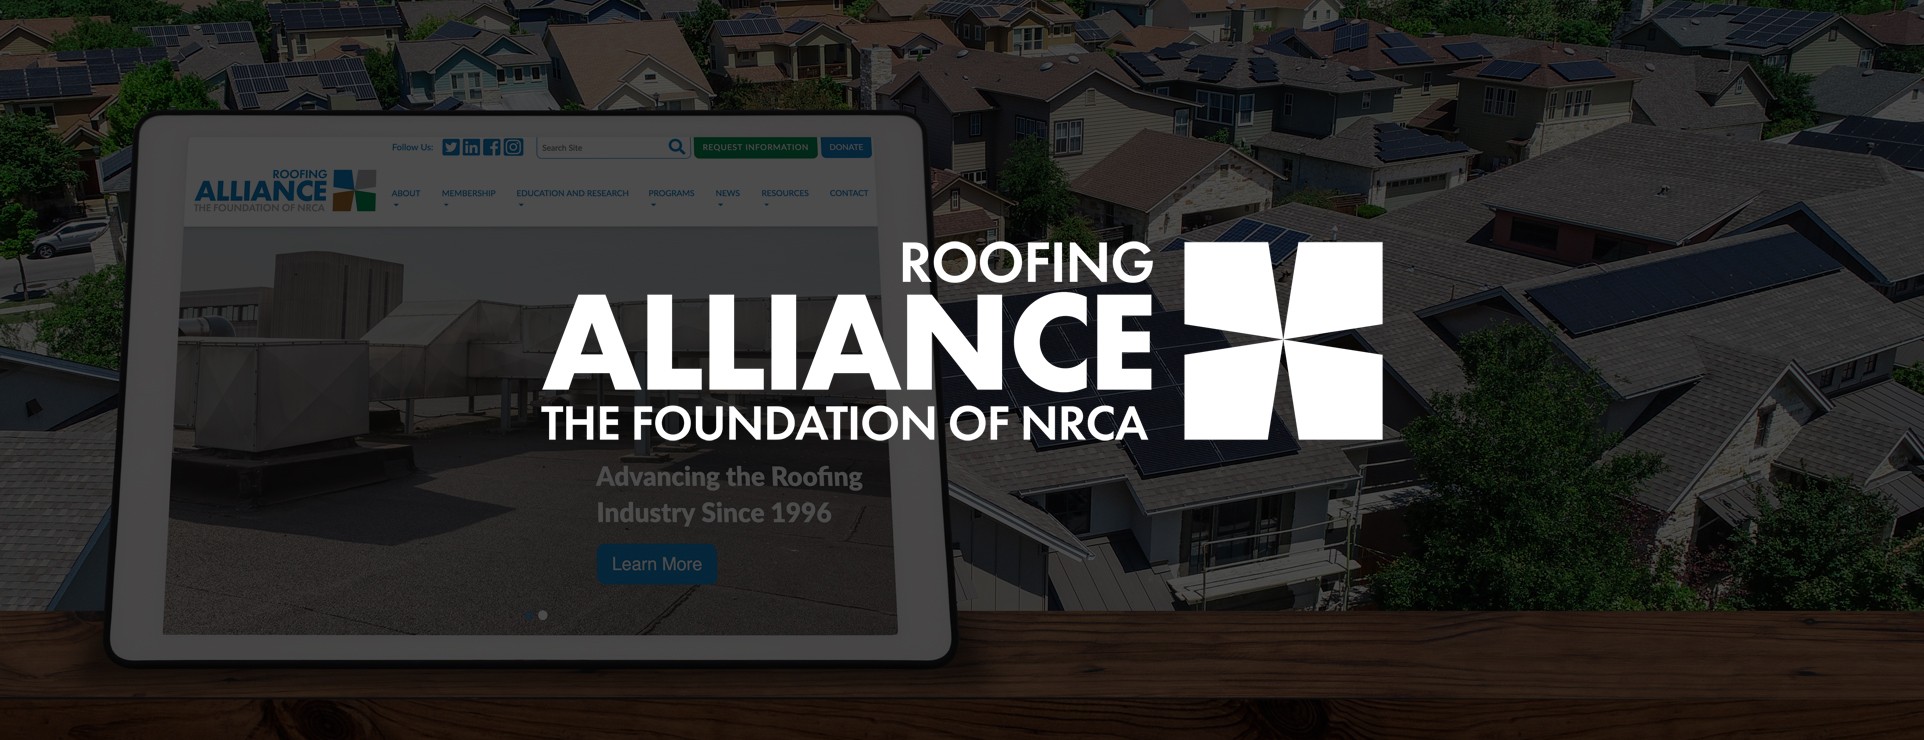 RoofingAlliance_HeaderImage